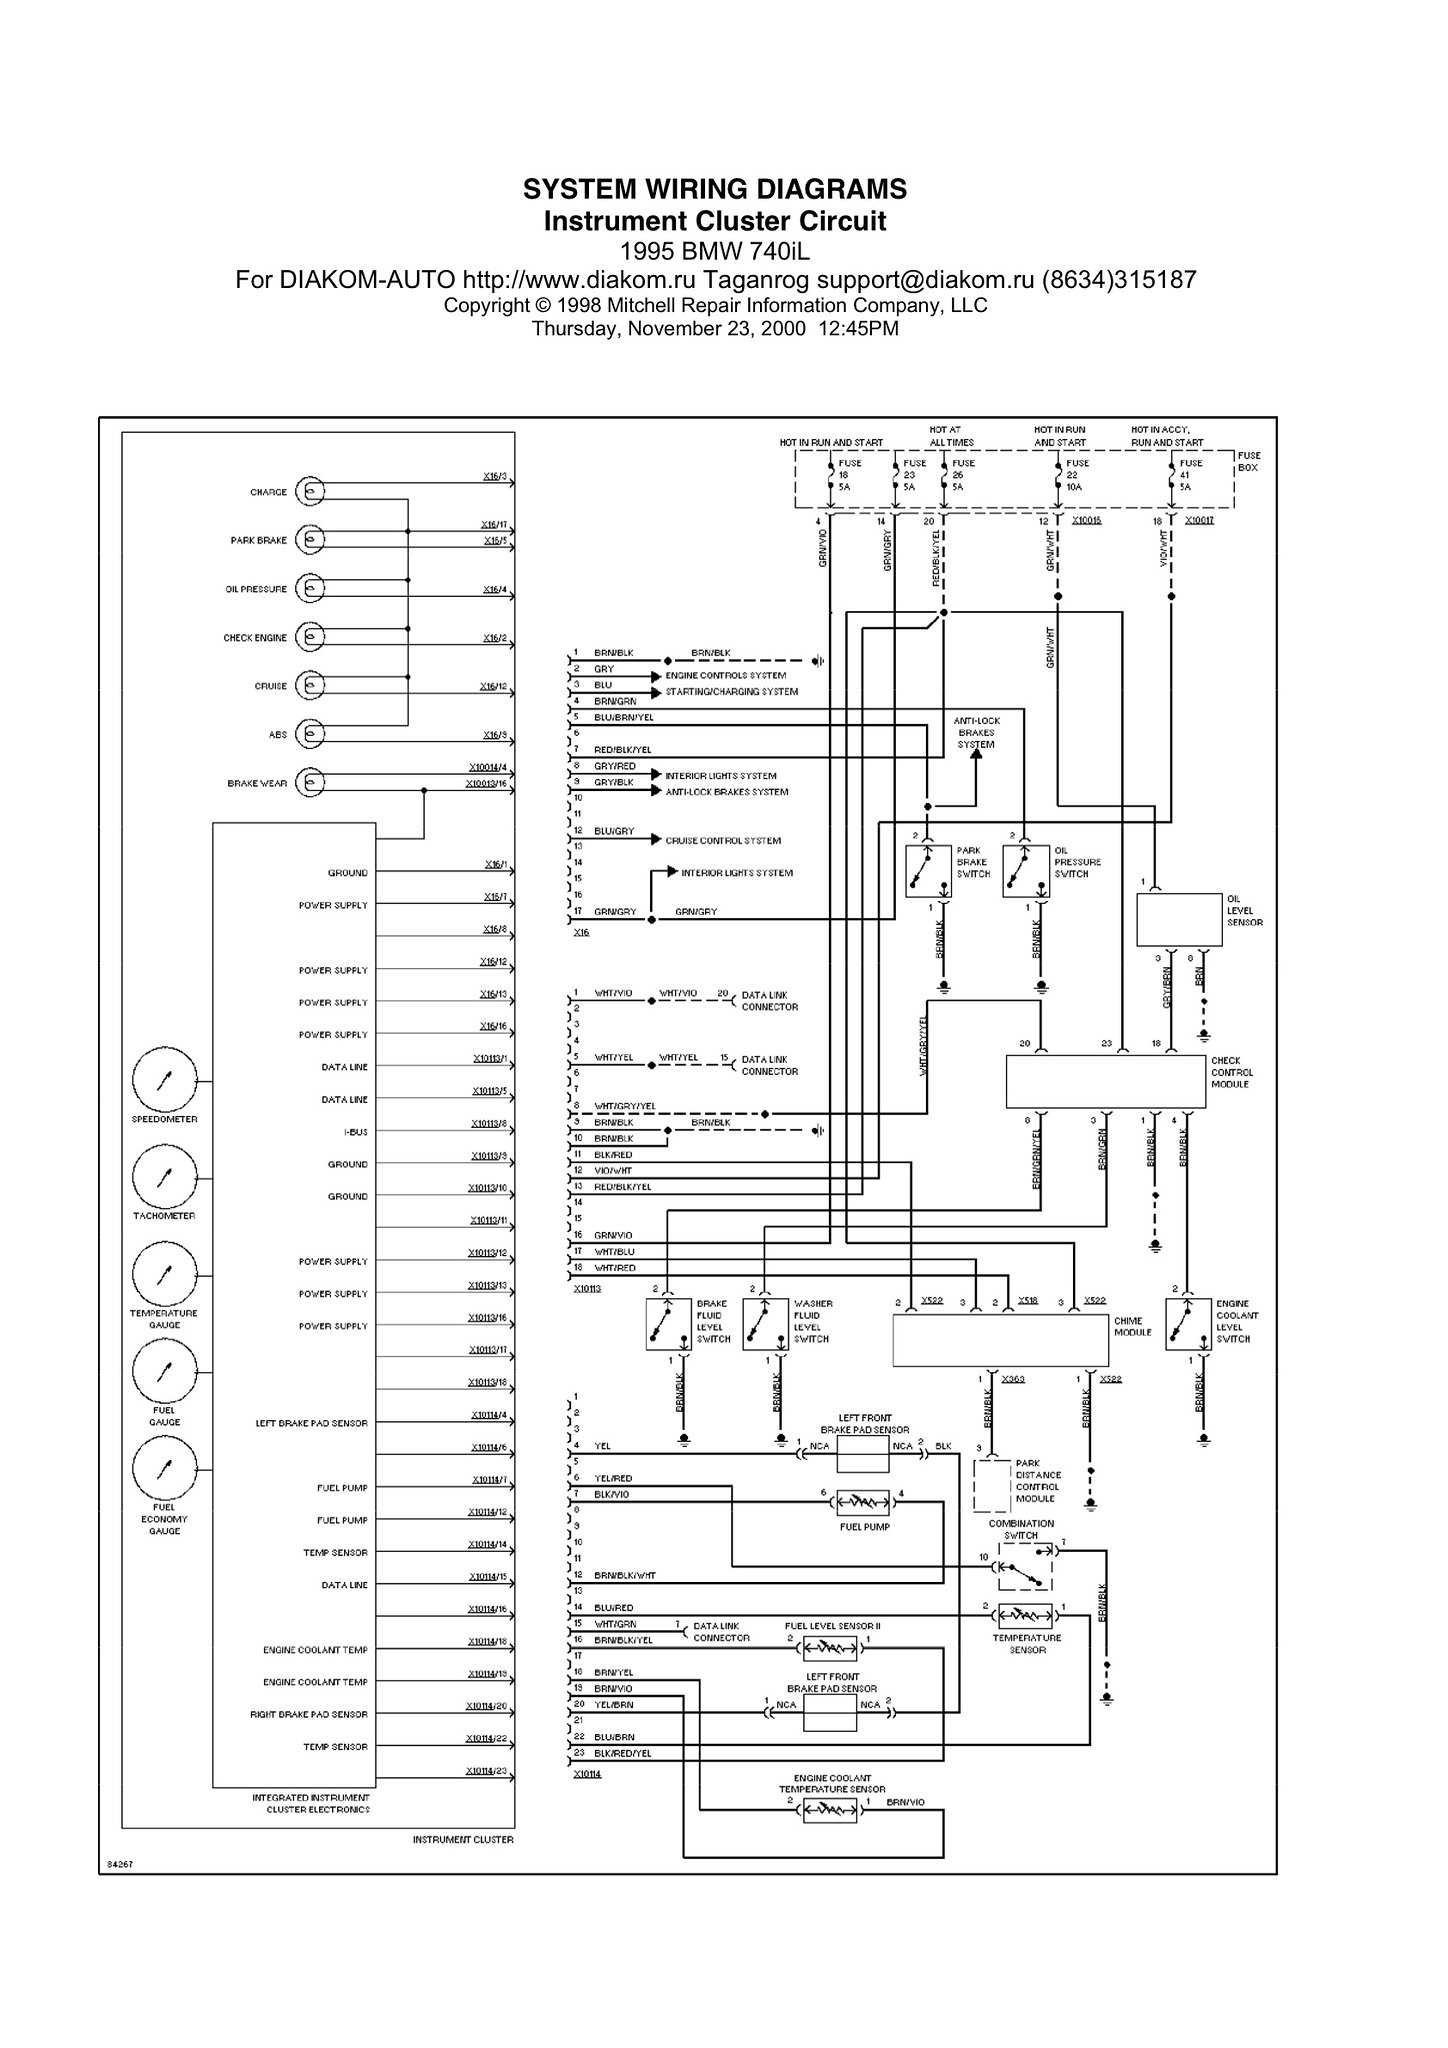 7703585142_dbc4ceb414_k how to power on e39 cluster out of car? e39 wiring diagram at mifinder.co